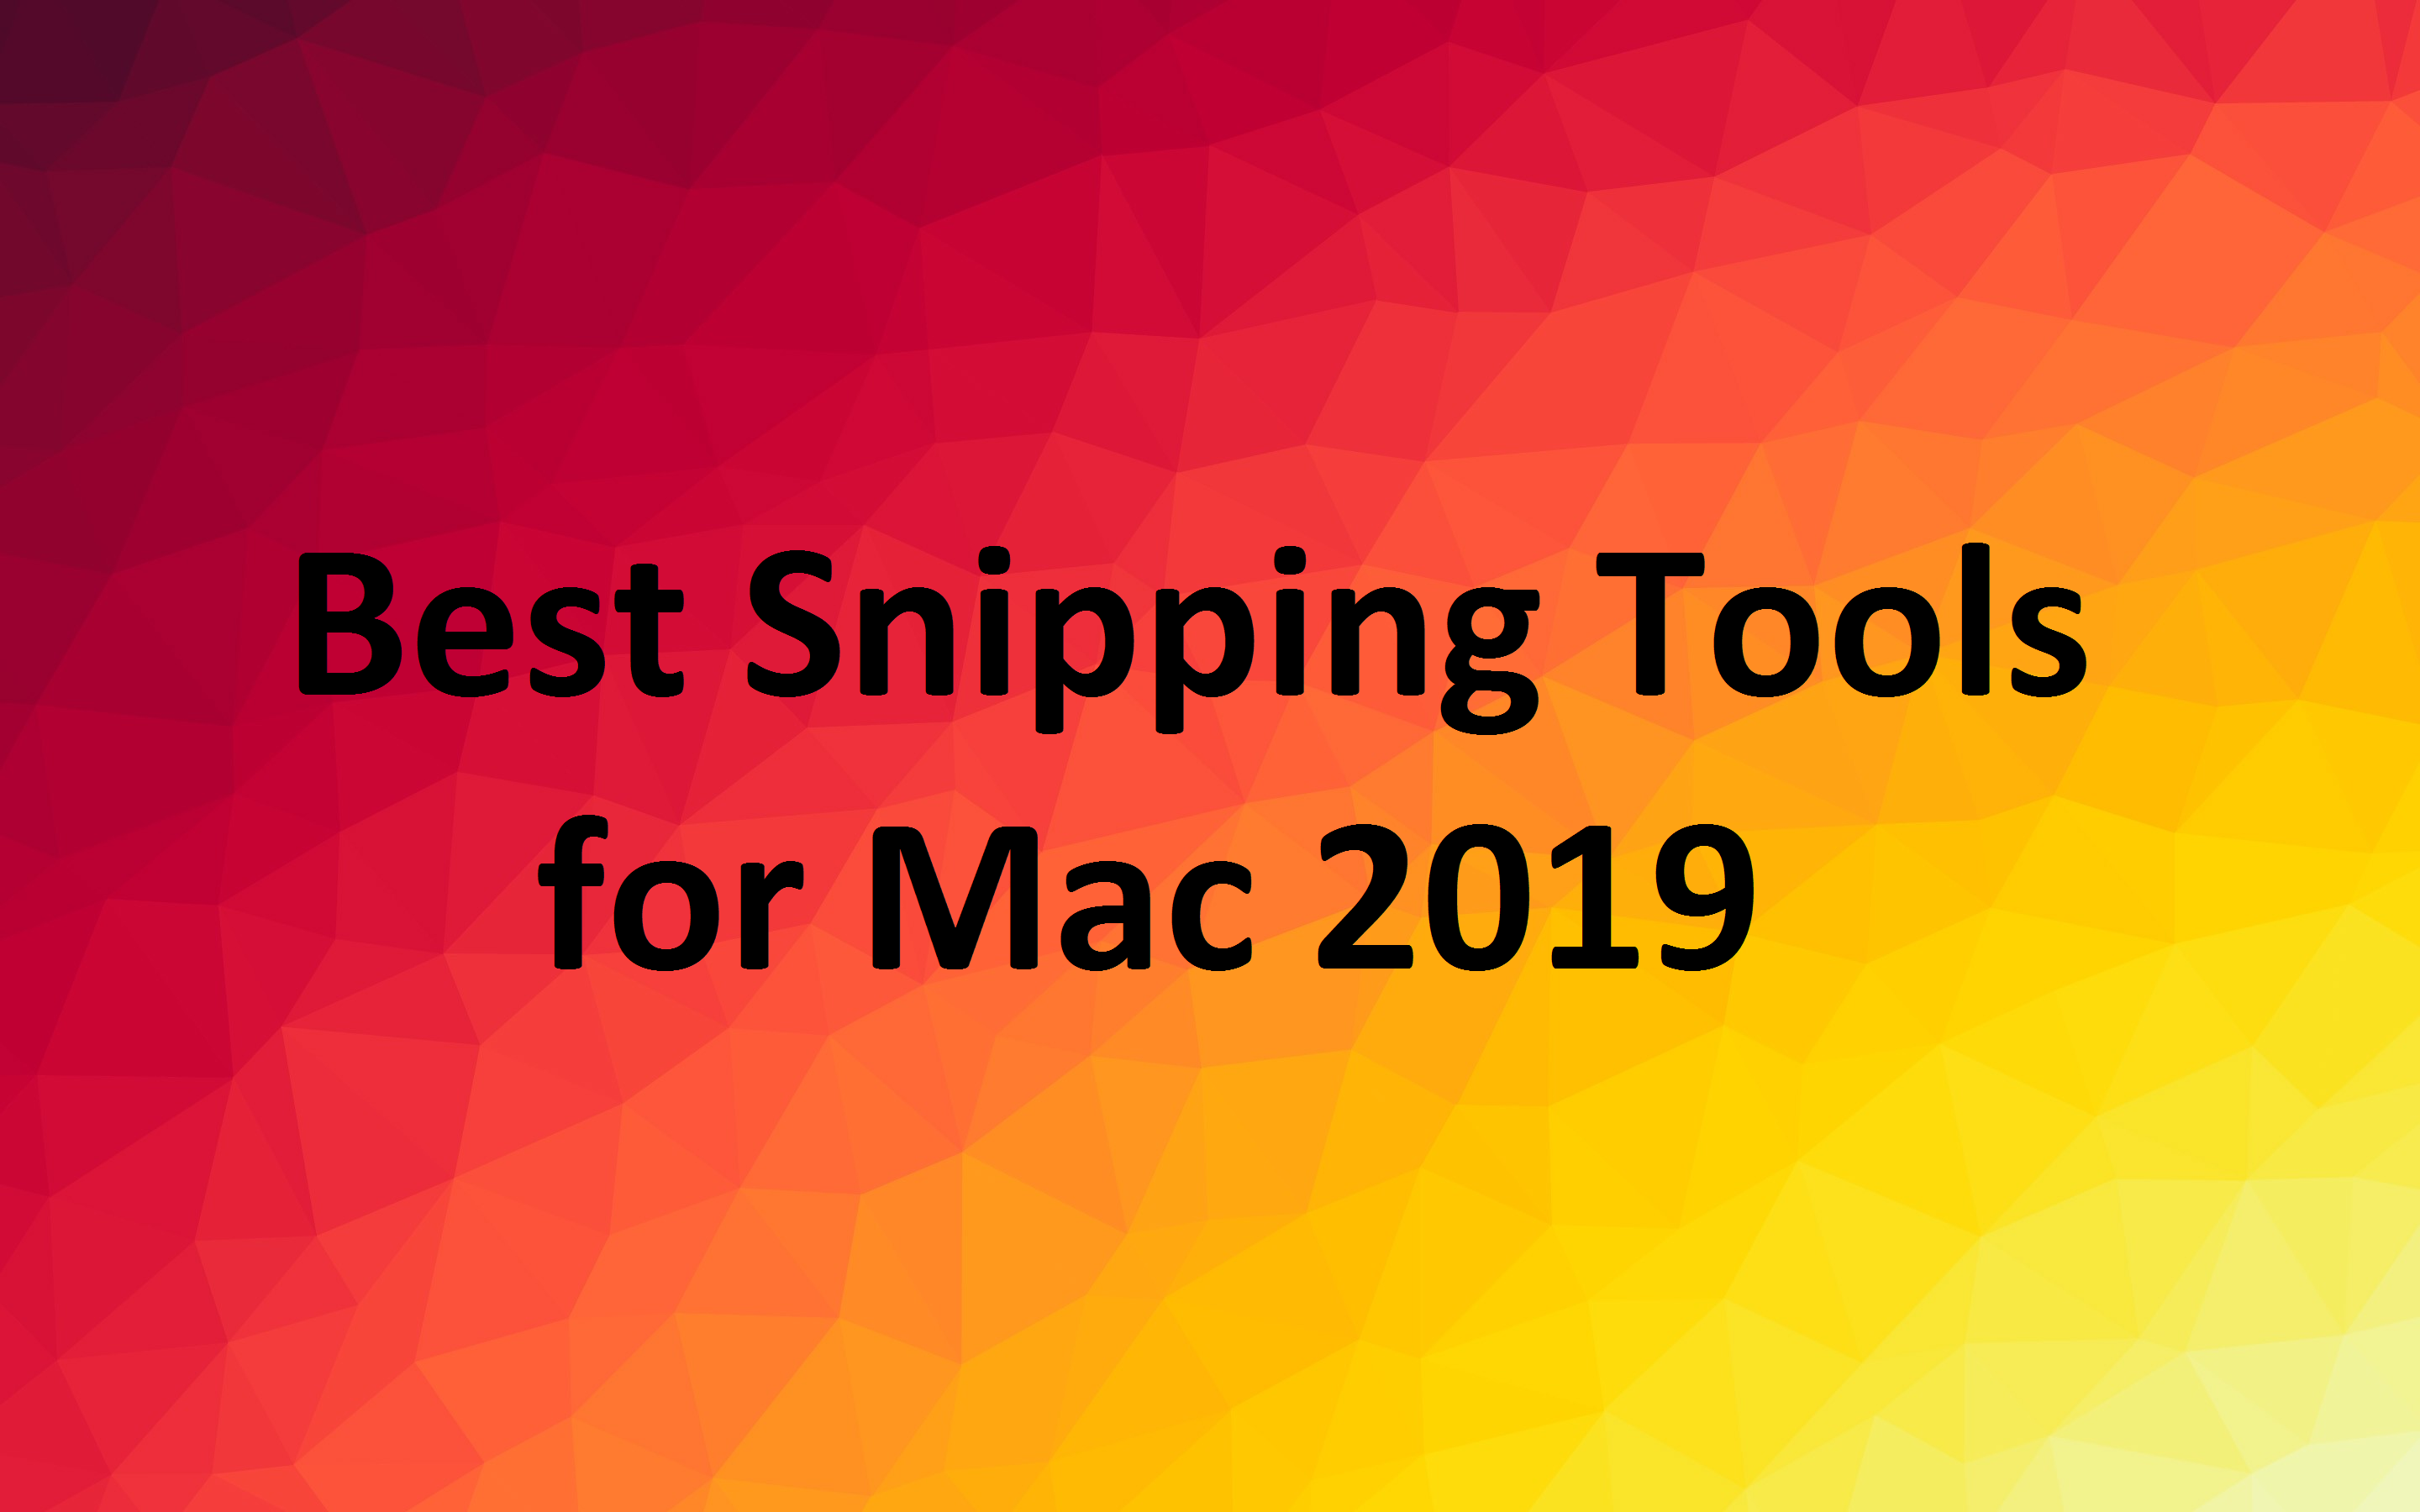 Best snipping tools